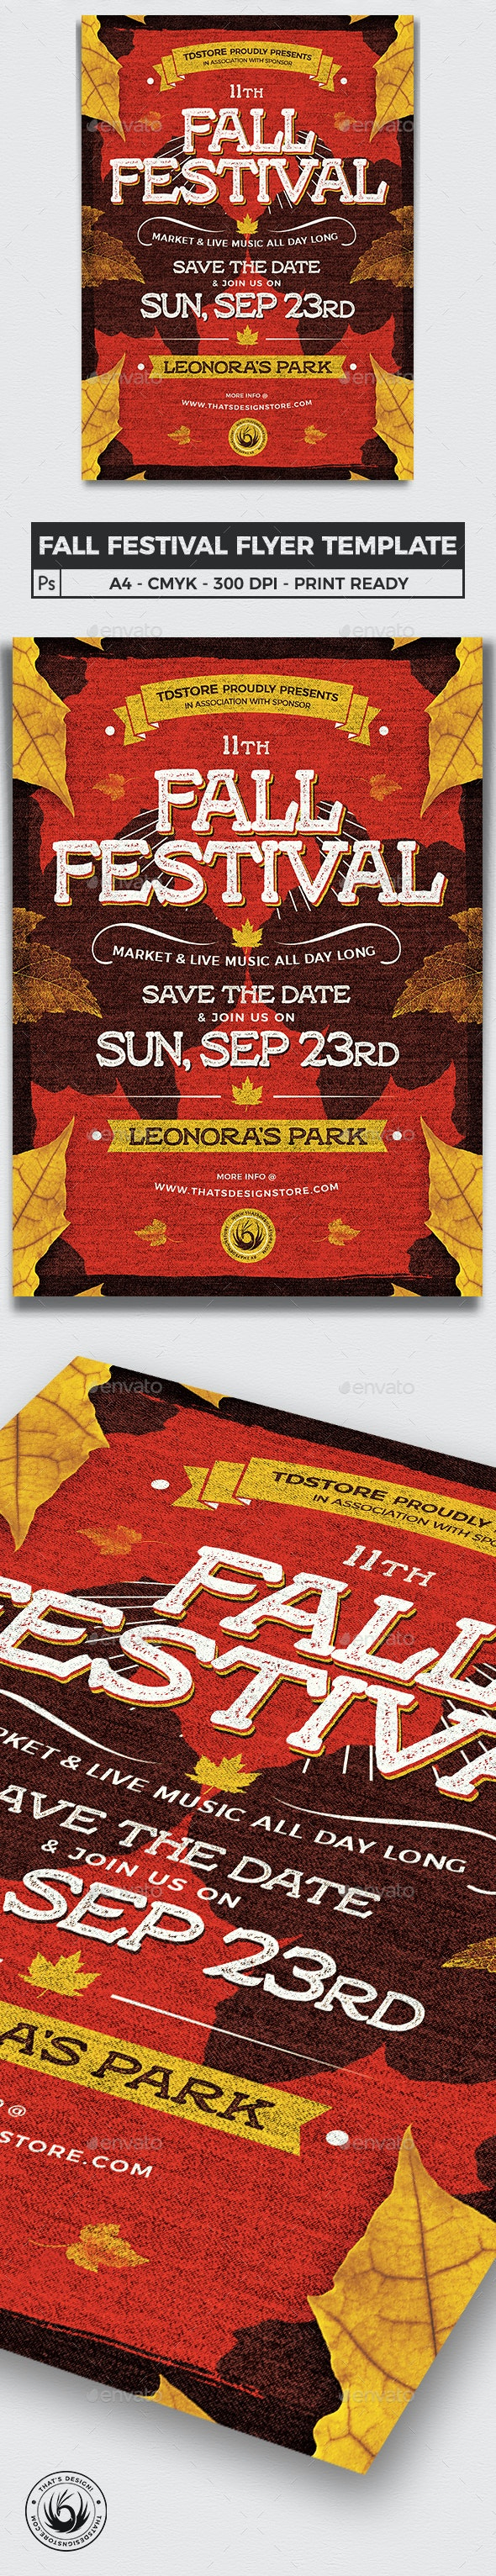 Fall Festival Flyer Template V2 - Clubs & Parties Events